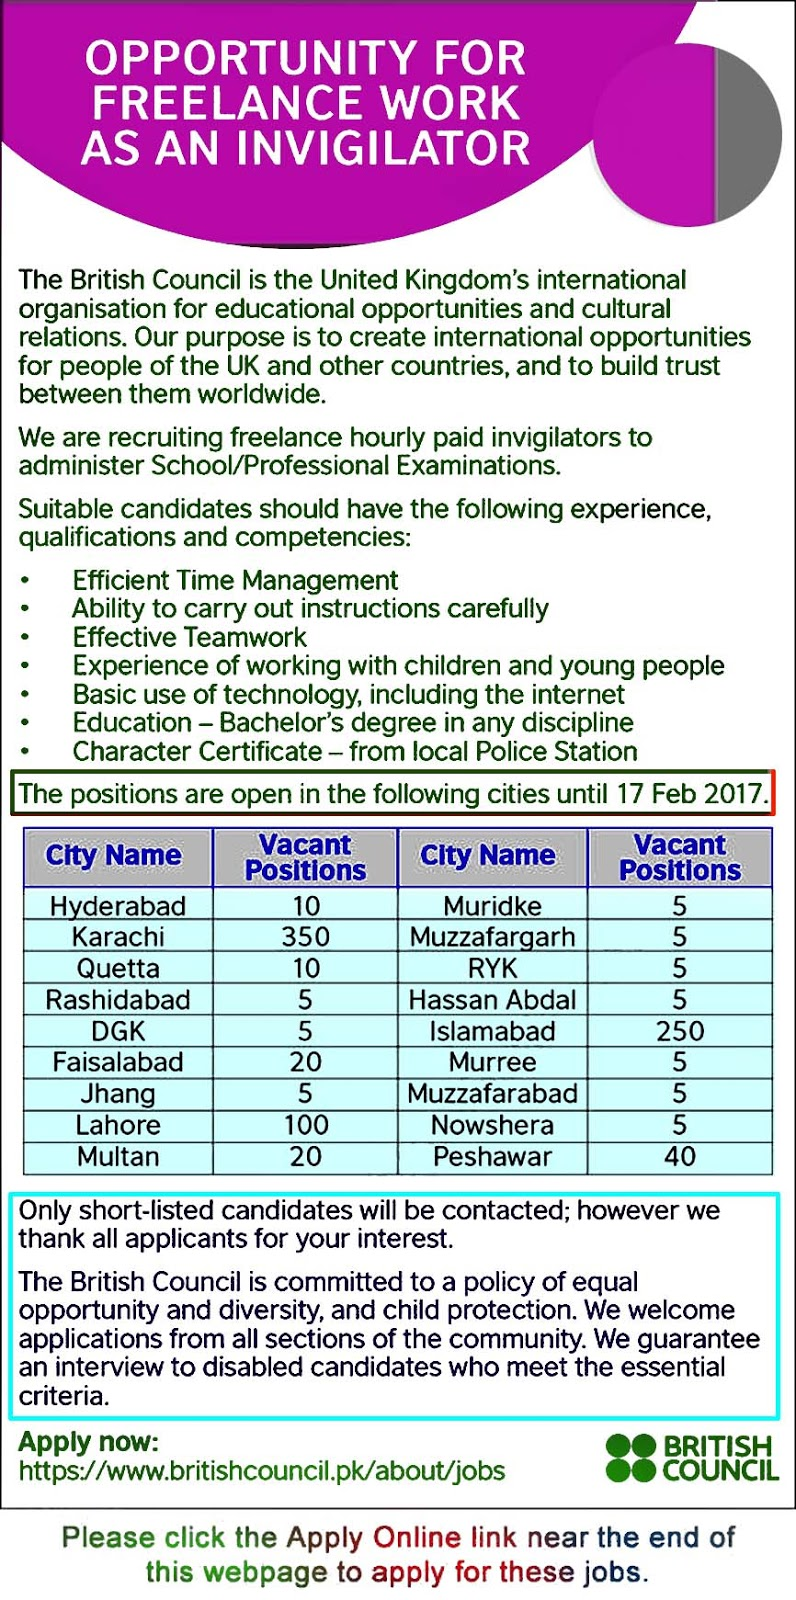 invigilator jobs in british council apply  invigilator jobs in british council 2017 apply online for lance work latest